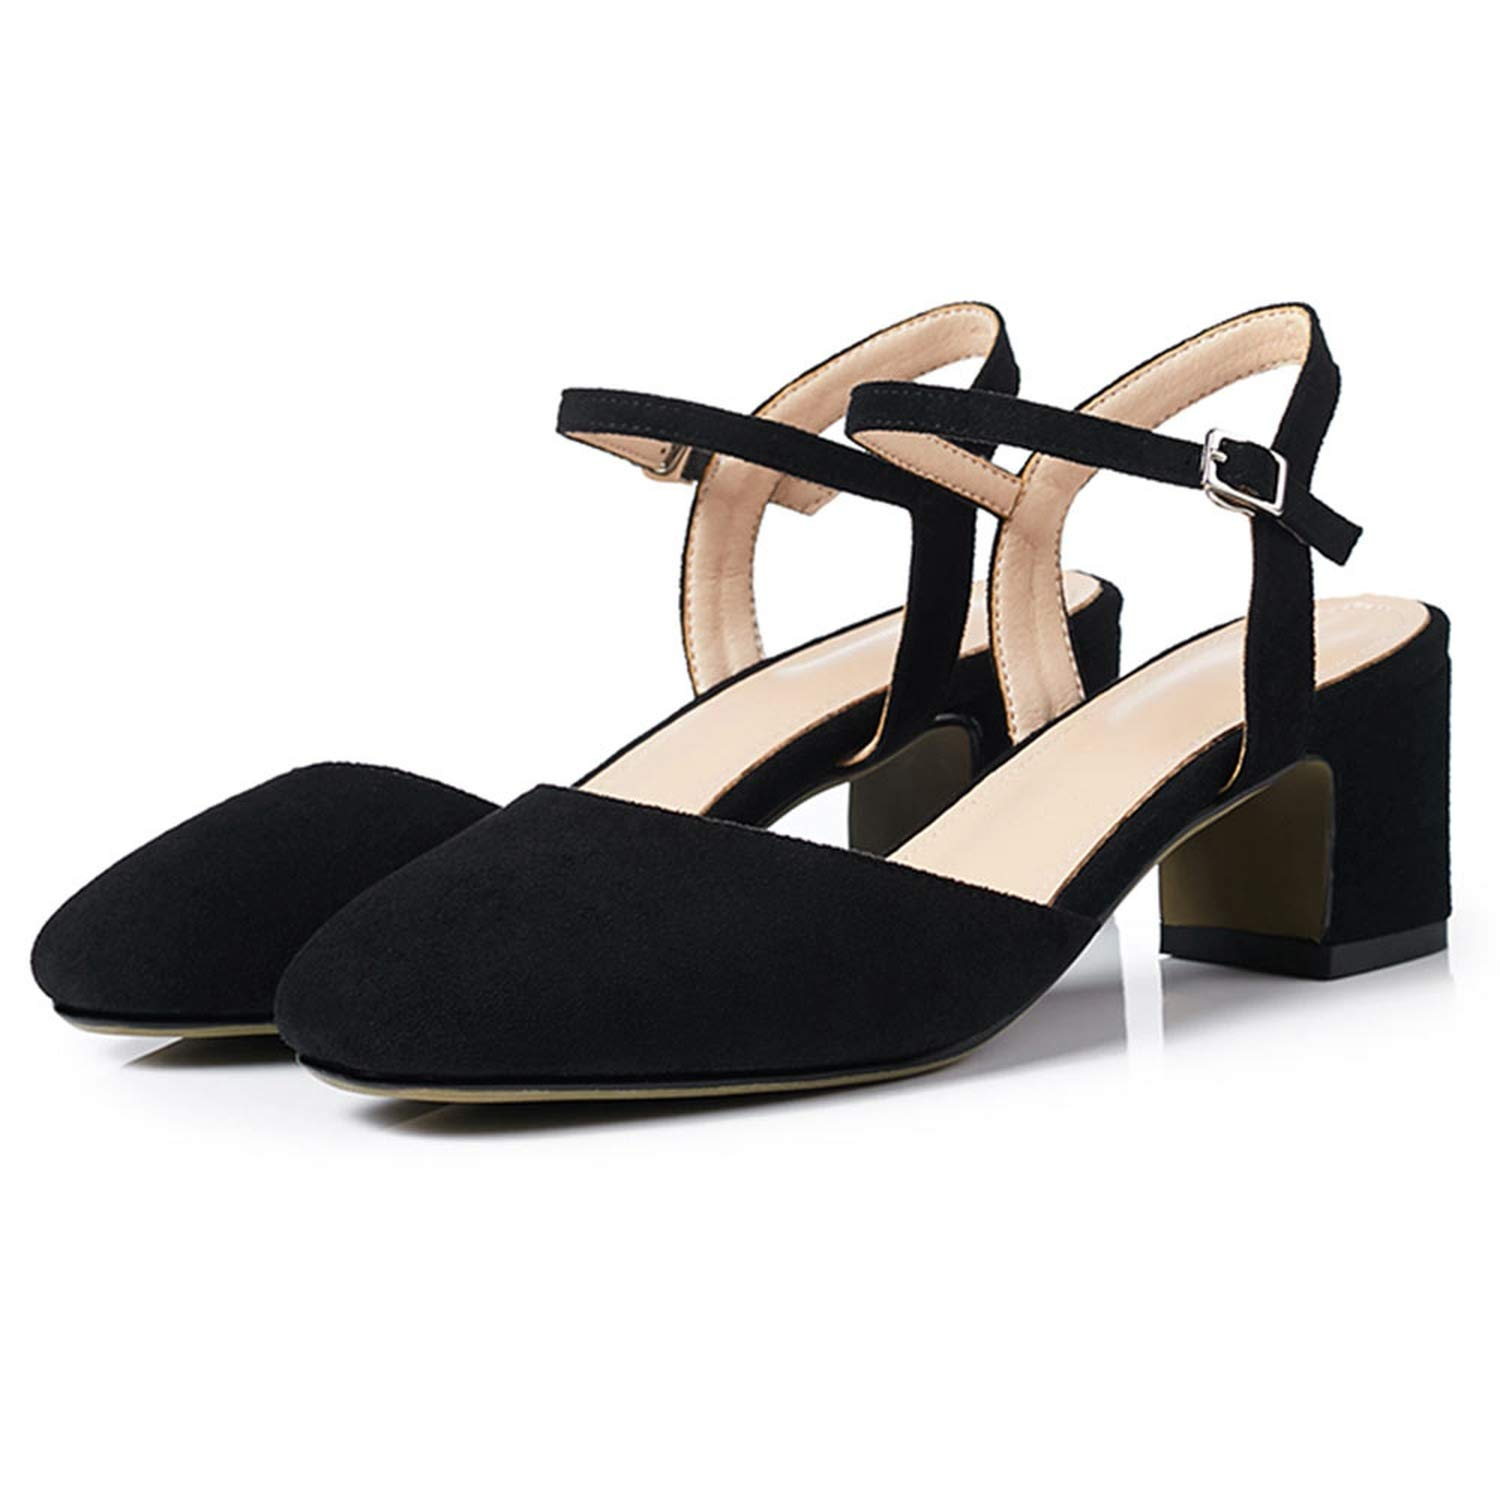 3-203 Black shoes Cover Square Toe Sexy Slingback Summer shoes for Women Sandal